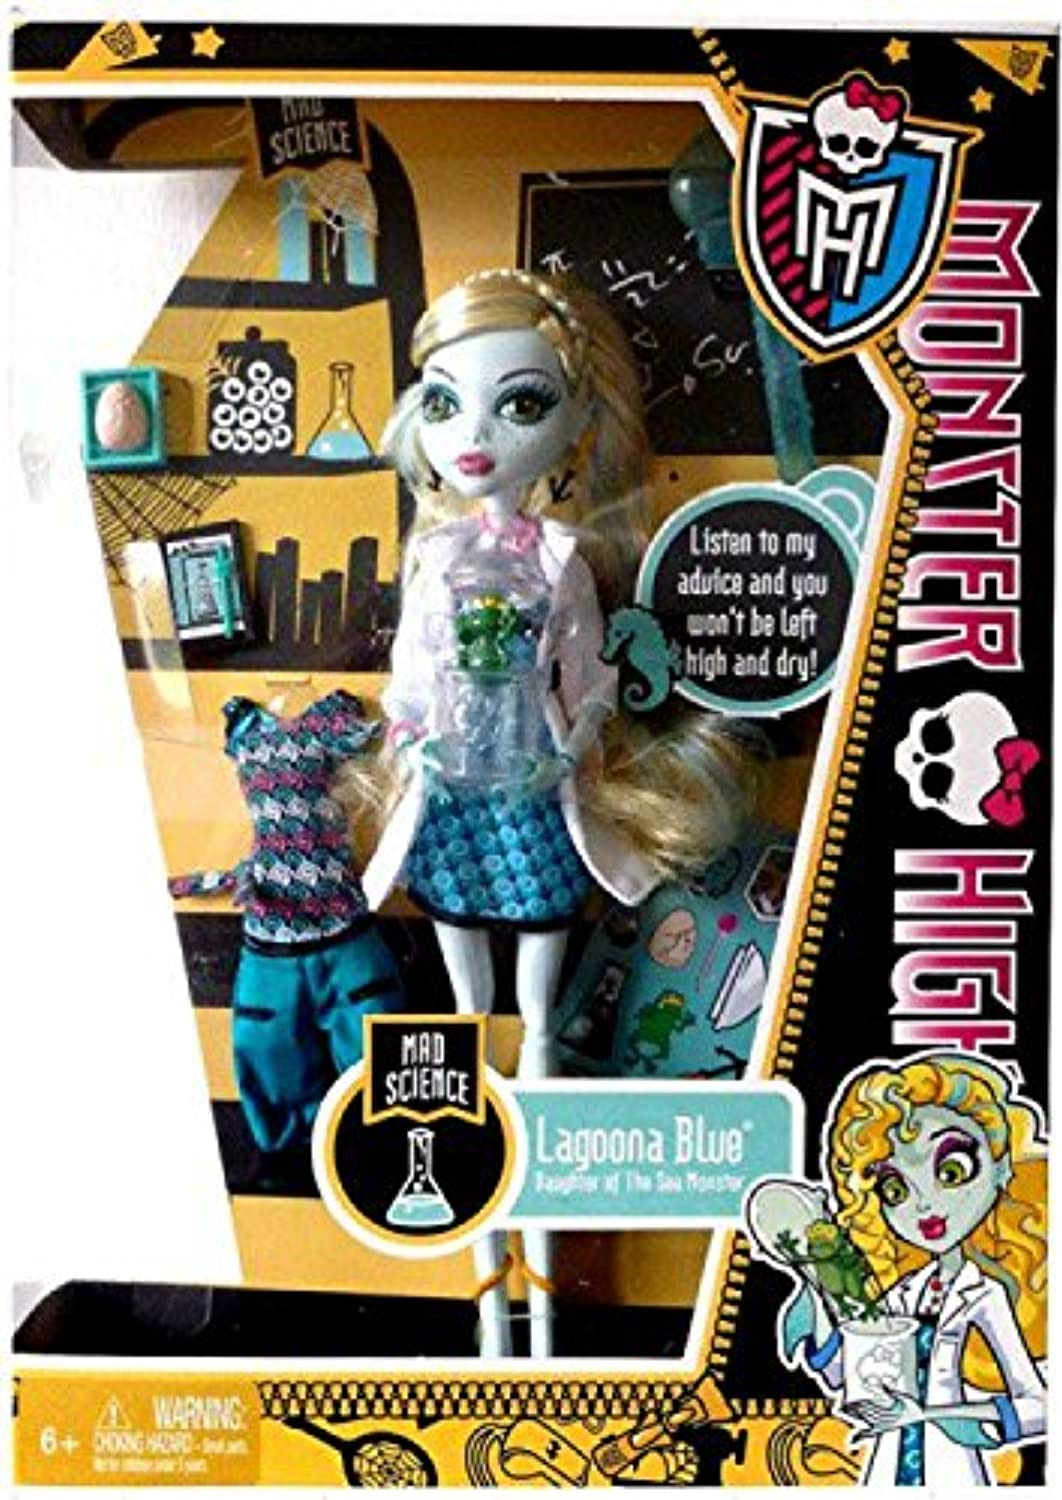 Monster High Lagoona bluee Mad Science Classrom Set by Monster High